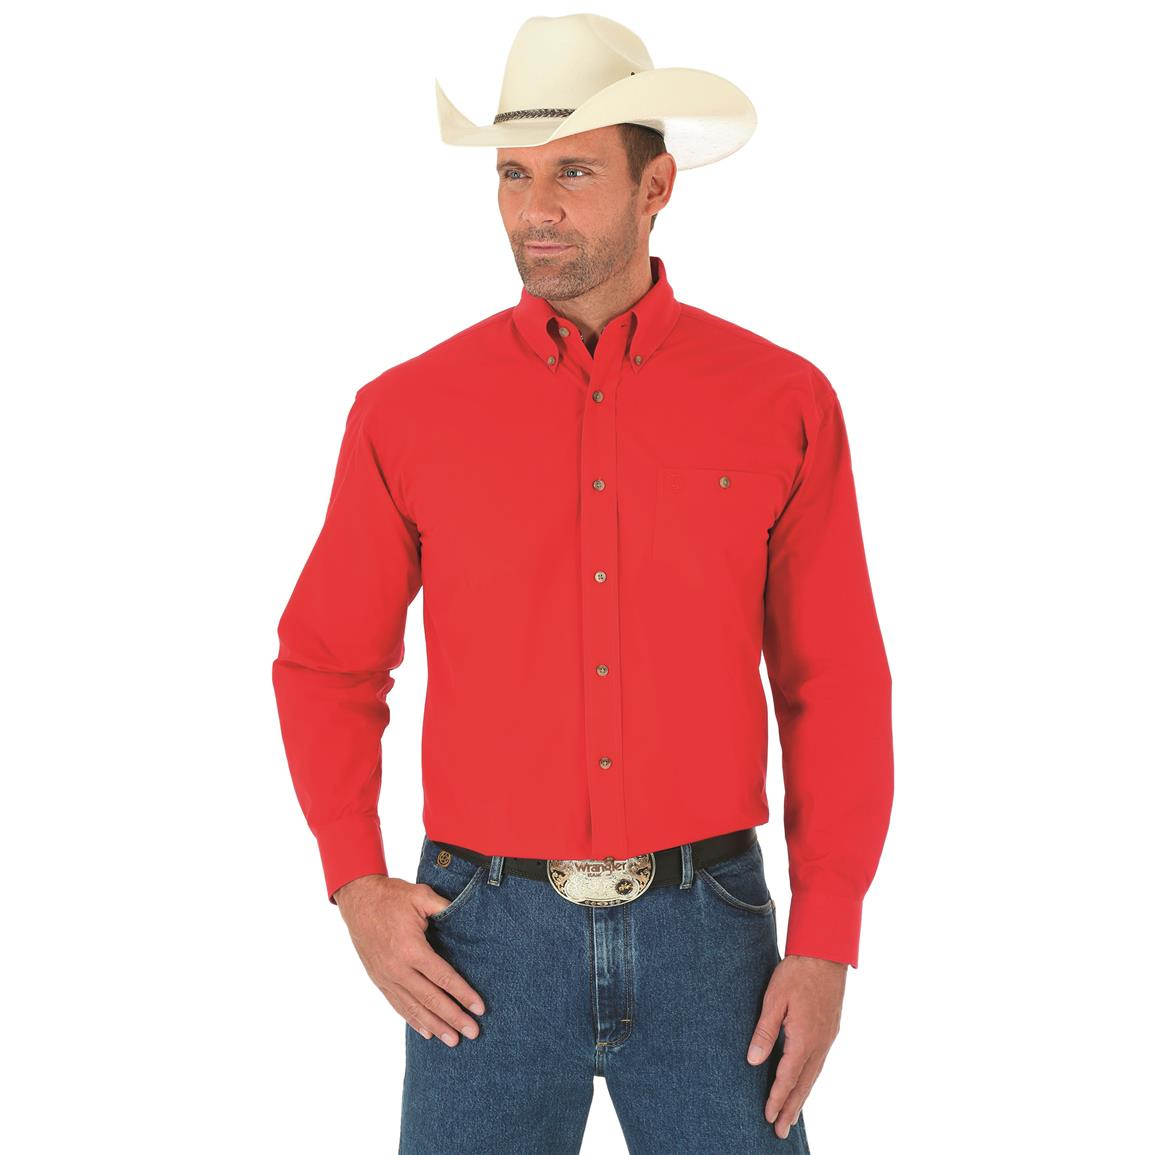 Wrangler George Strait Men's Long Sleeve Button Down Solid Shirt, Red